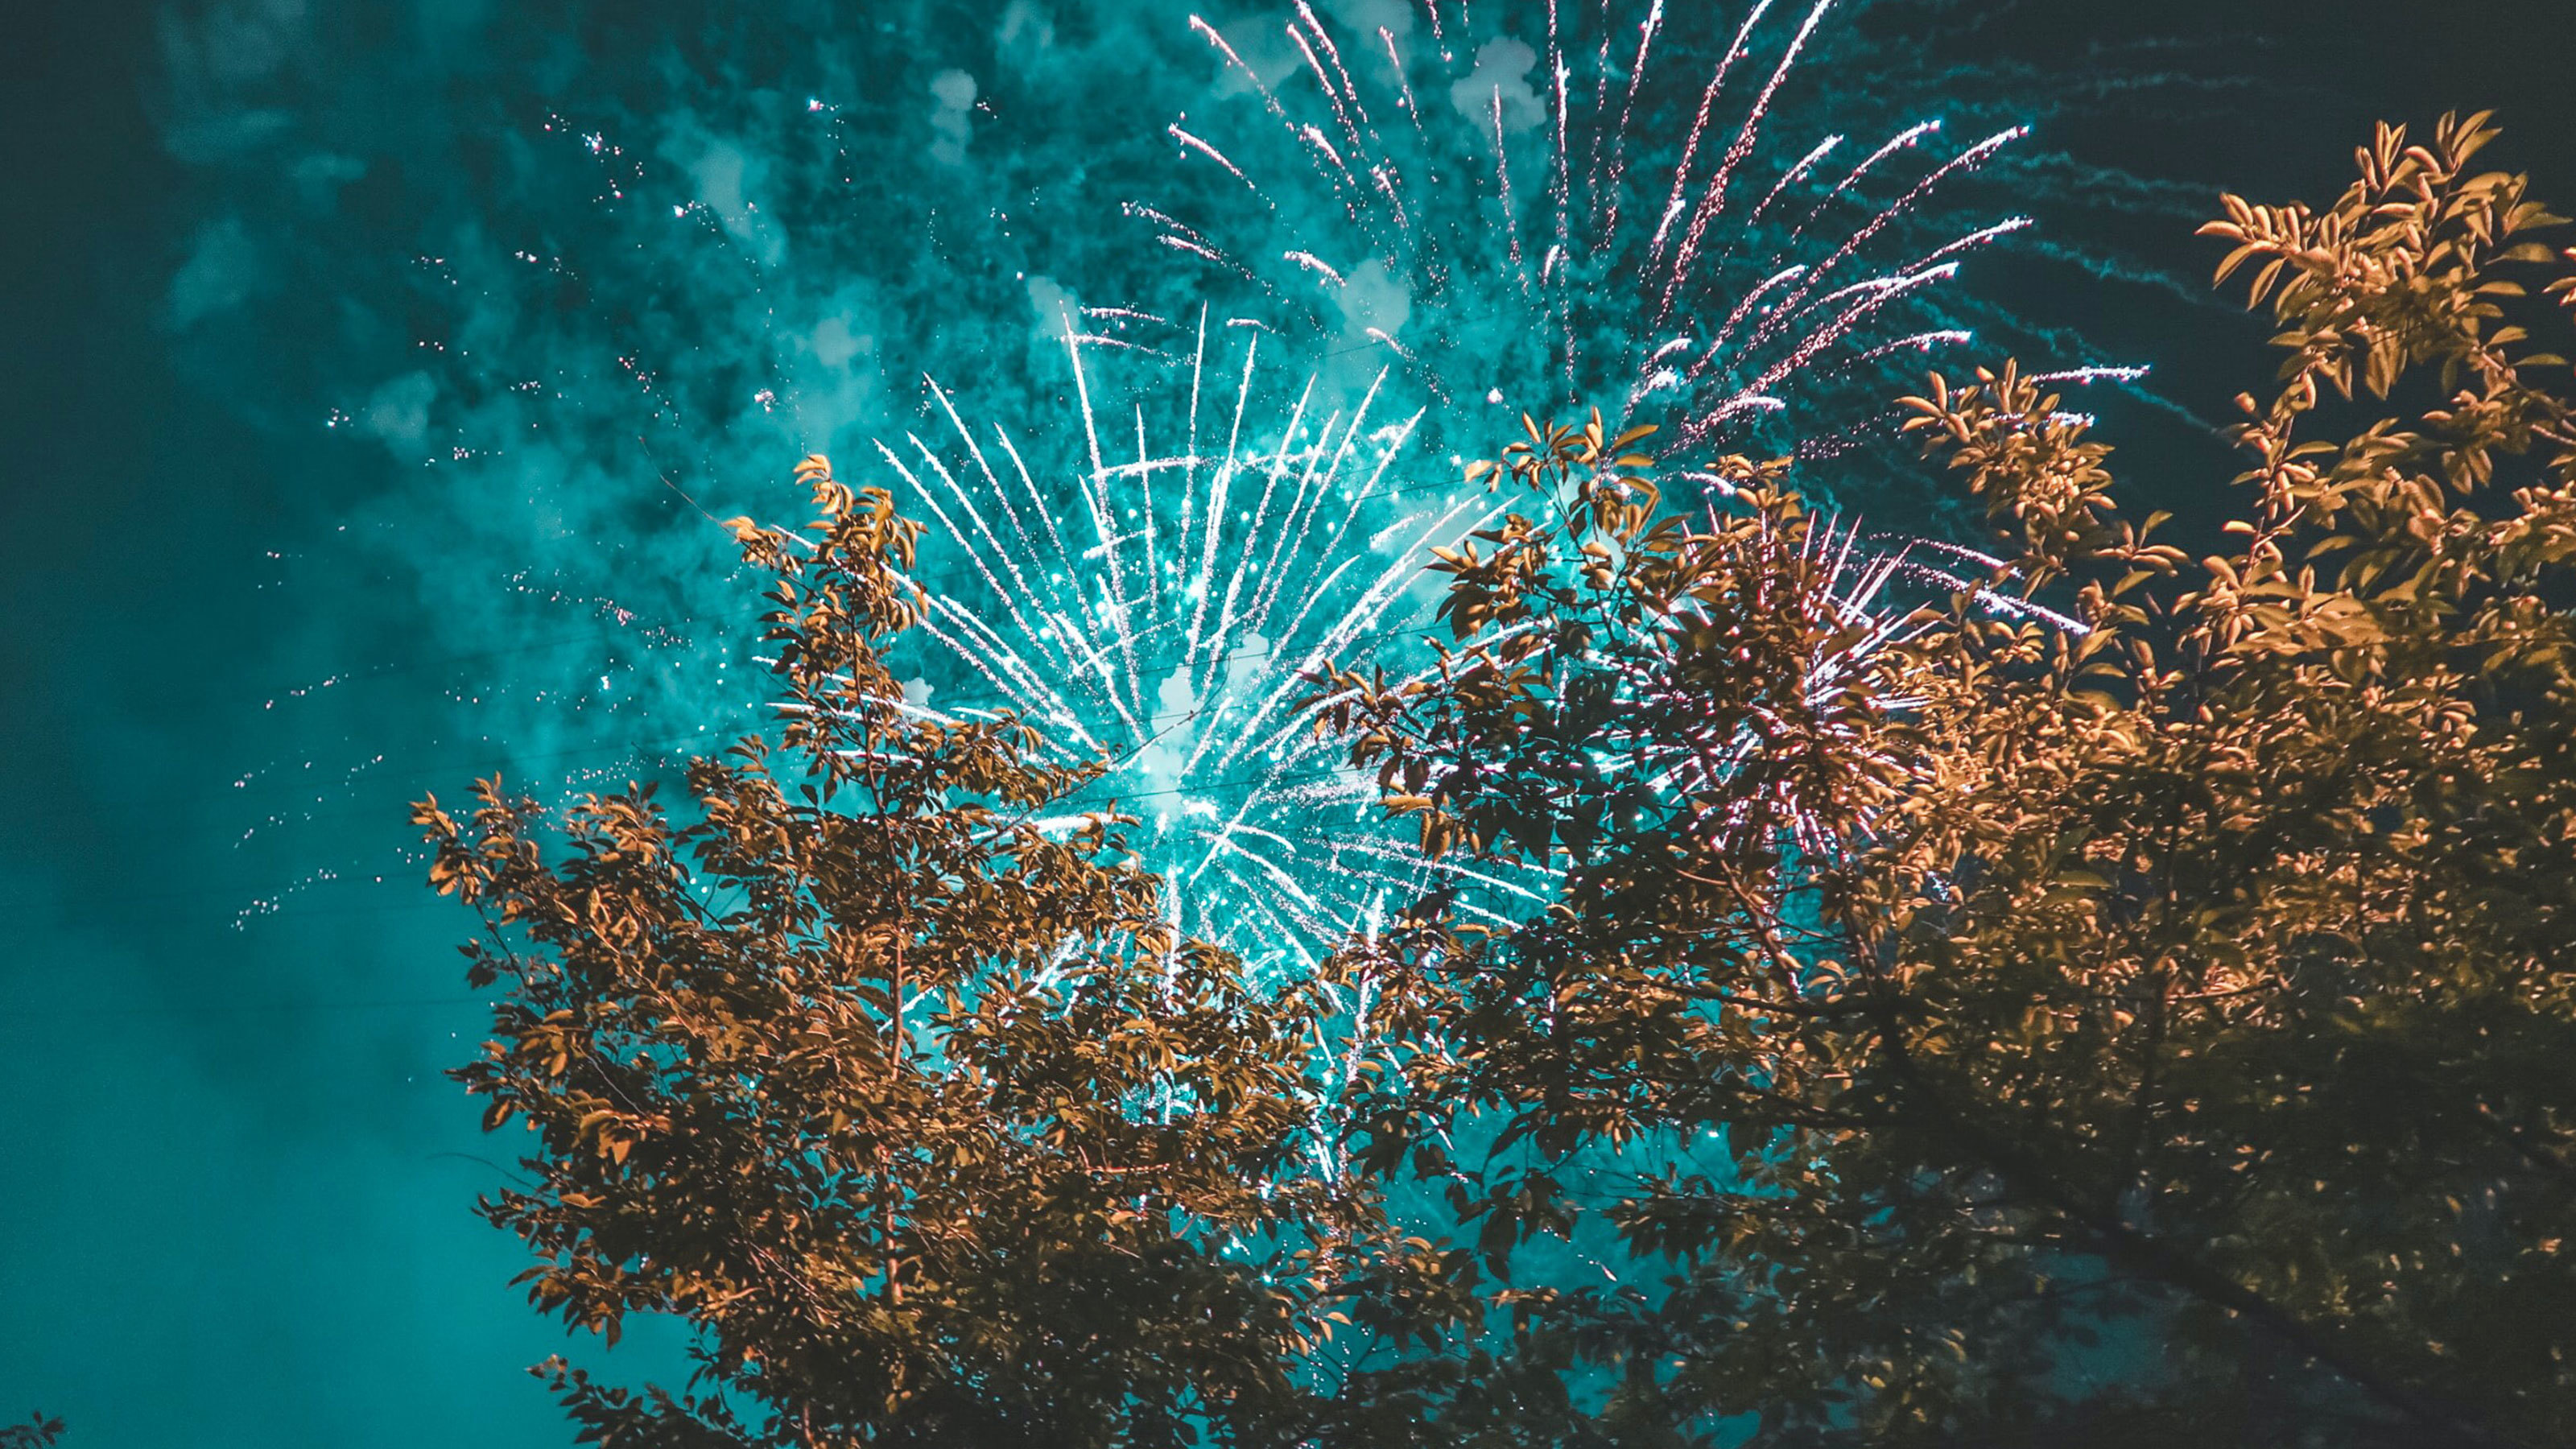 Fireworks over tree canopy